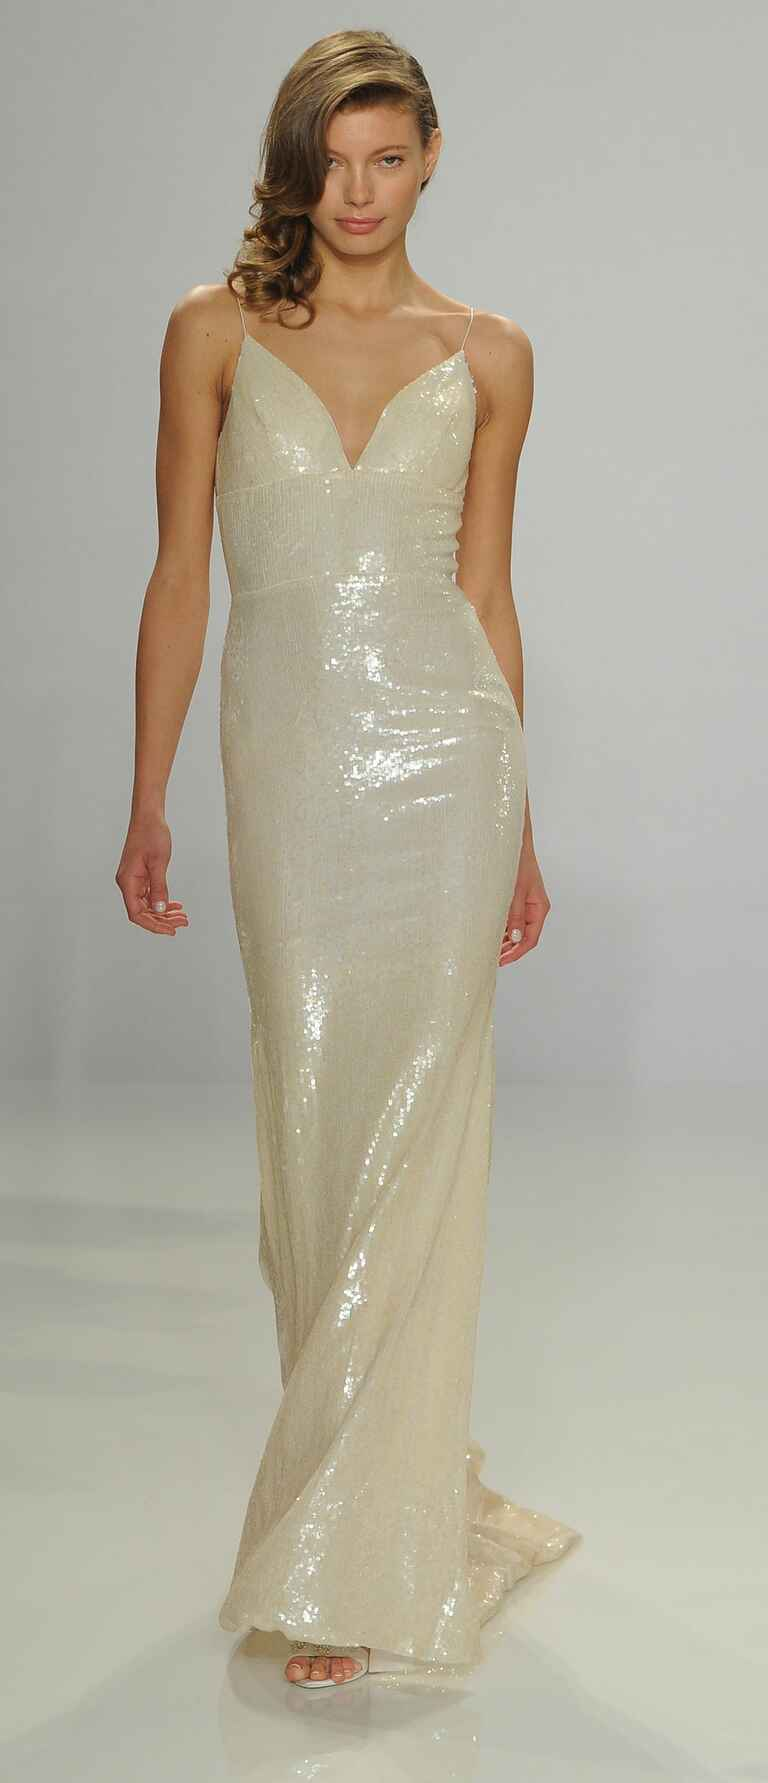 Christian Siriano Spring 2017 ombré sequin slip wedding dress